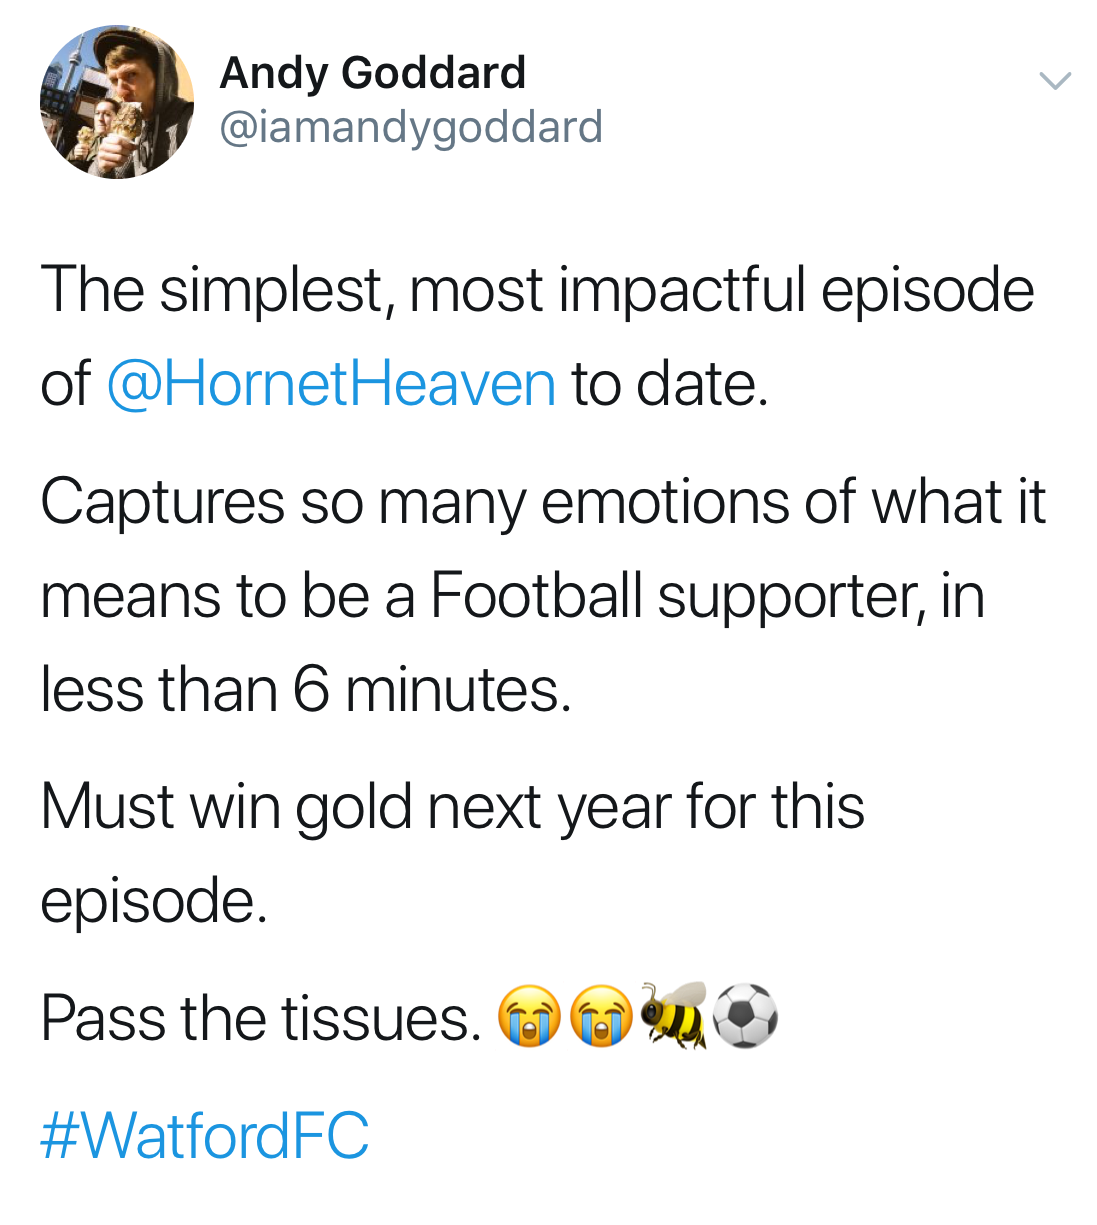 Must win gold